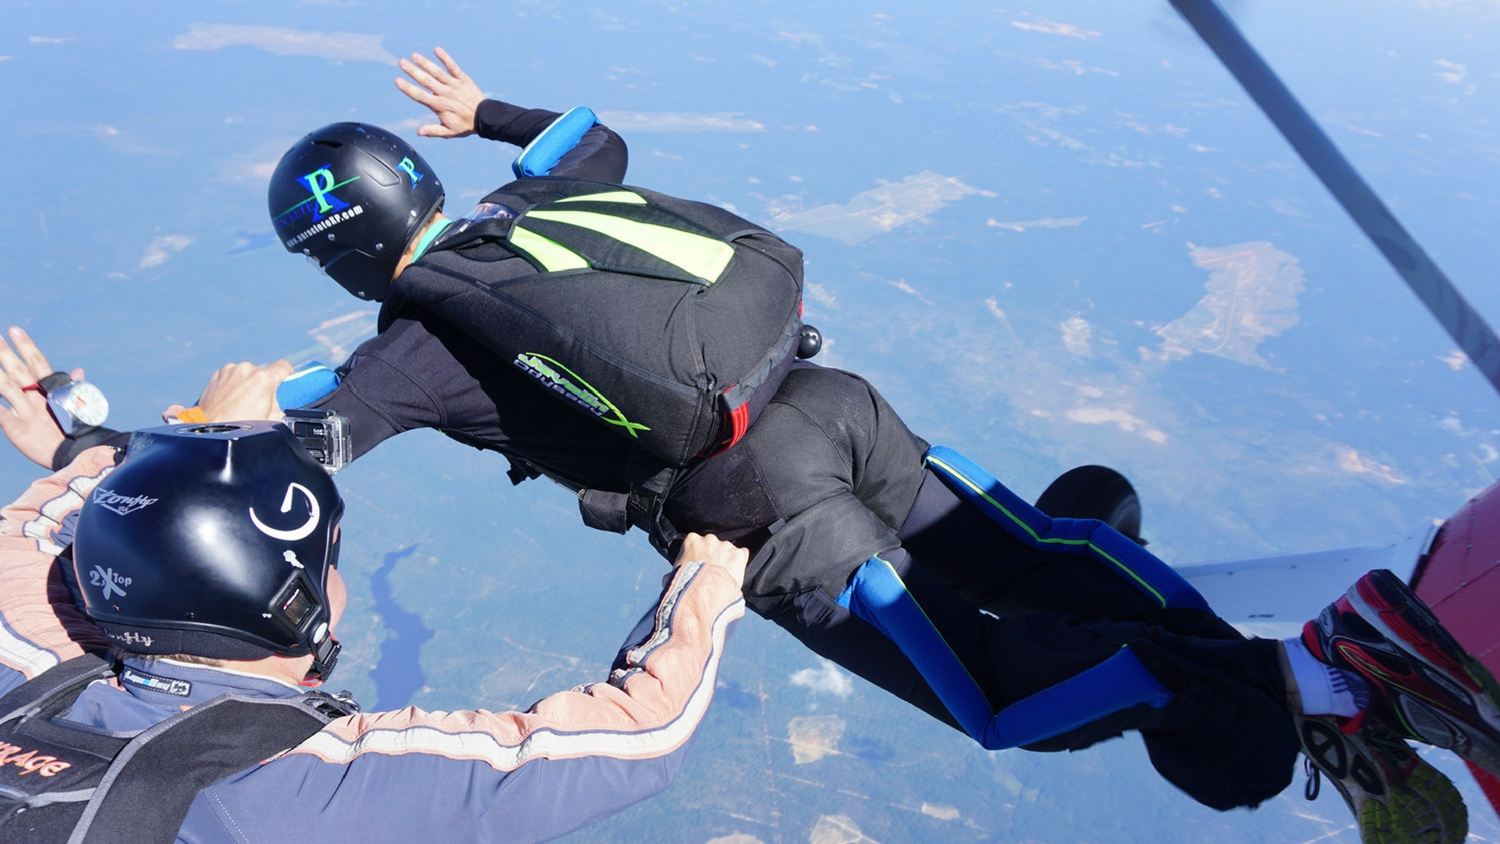 Comprehensive Learn To Skydive Programs Skydive Paraclete Xp